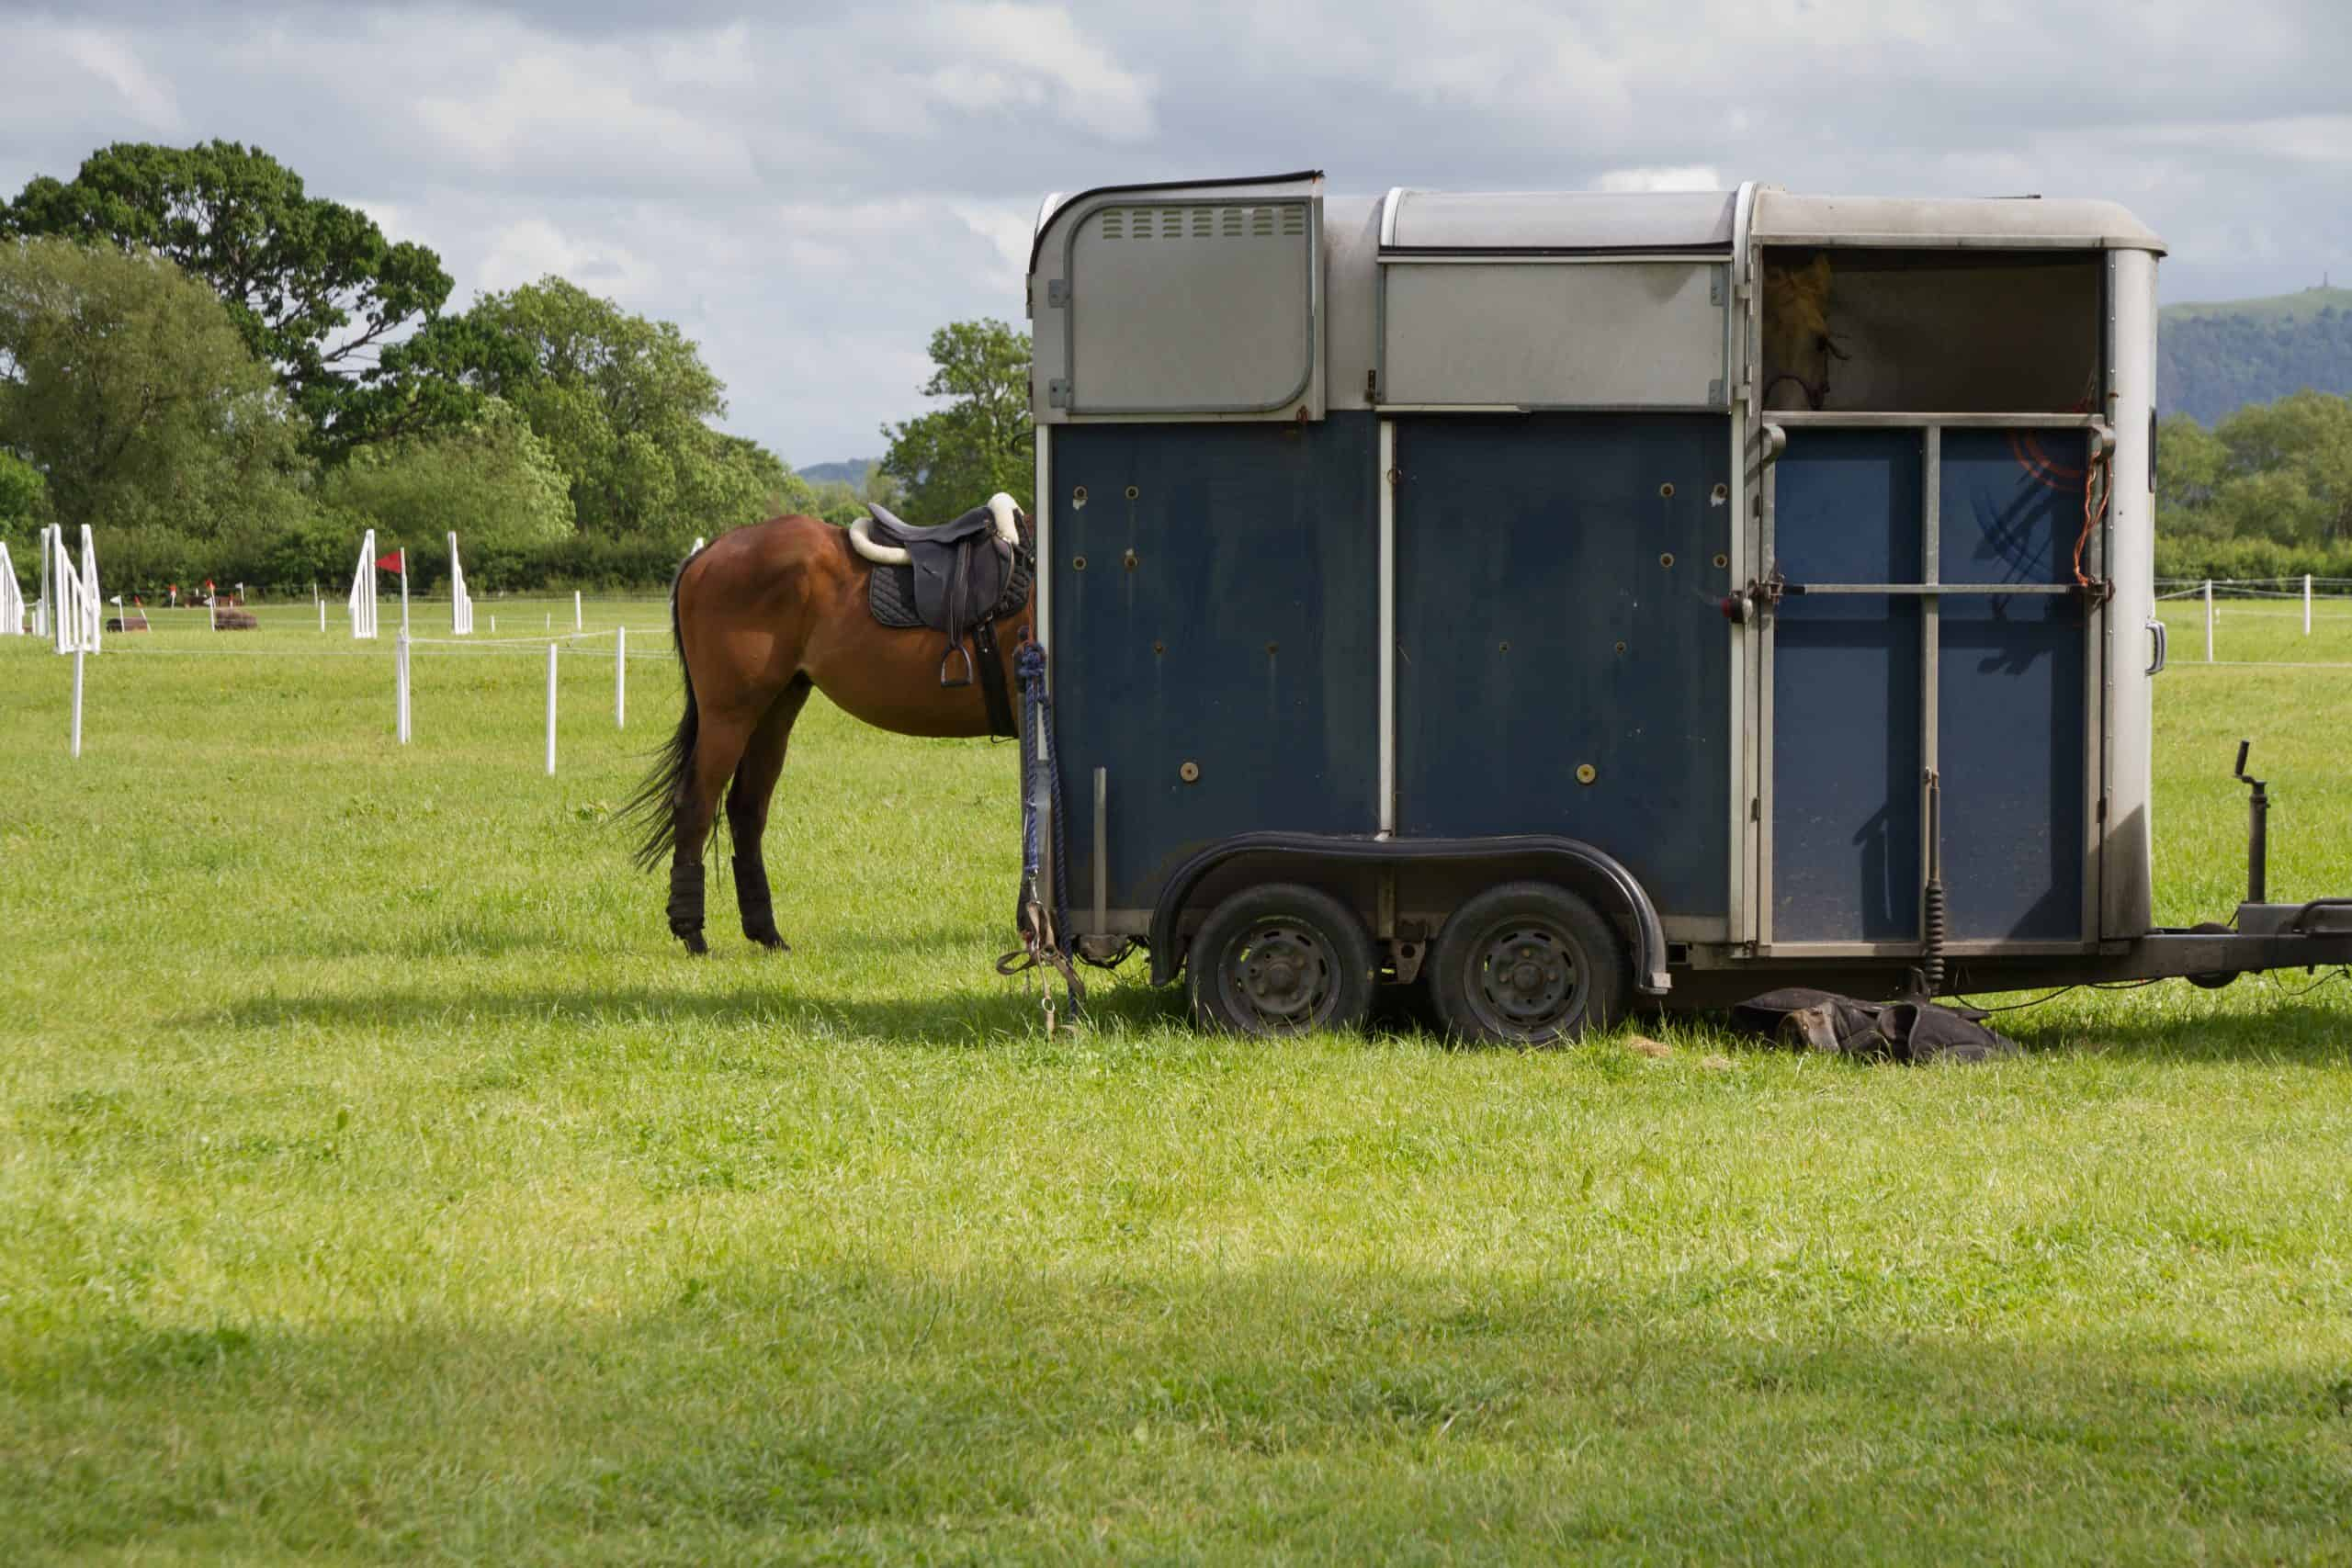 Pony rests by horsebox after competing at event.